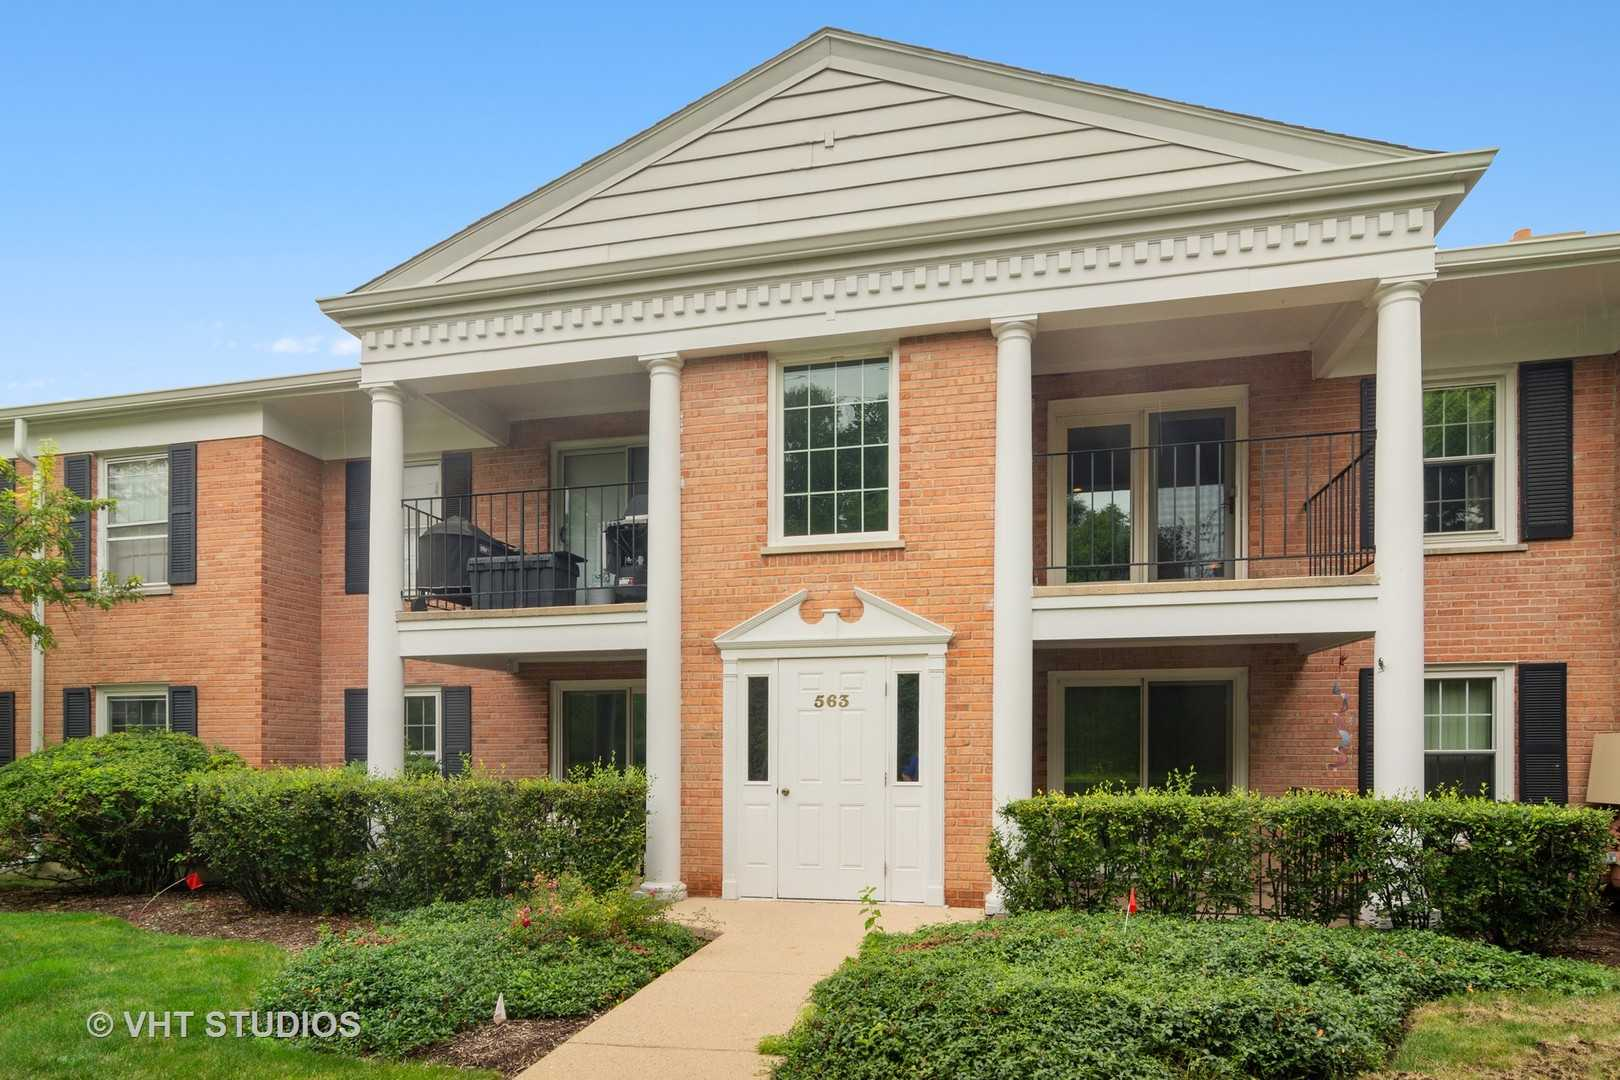 563 Shorely Unit Unit 203 ,Barrington, Illinois 60010